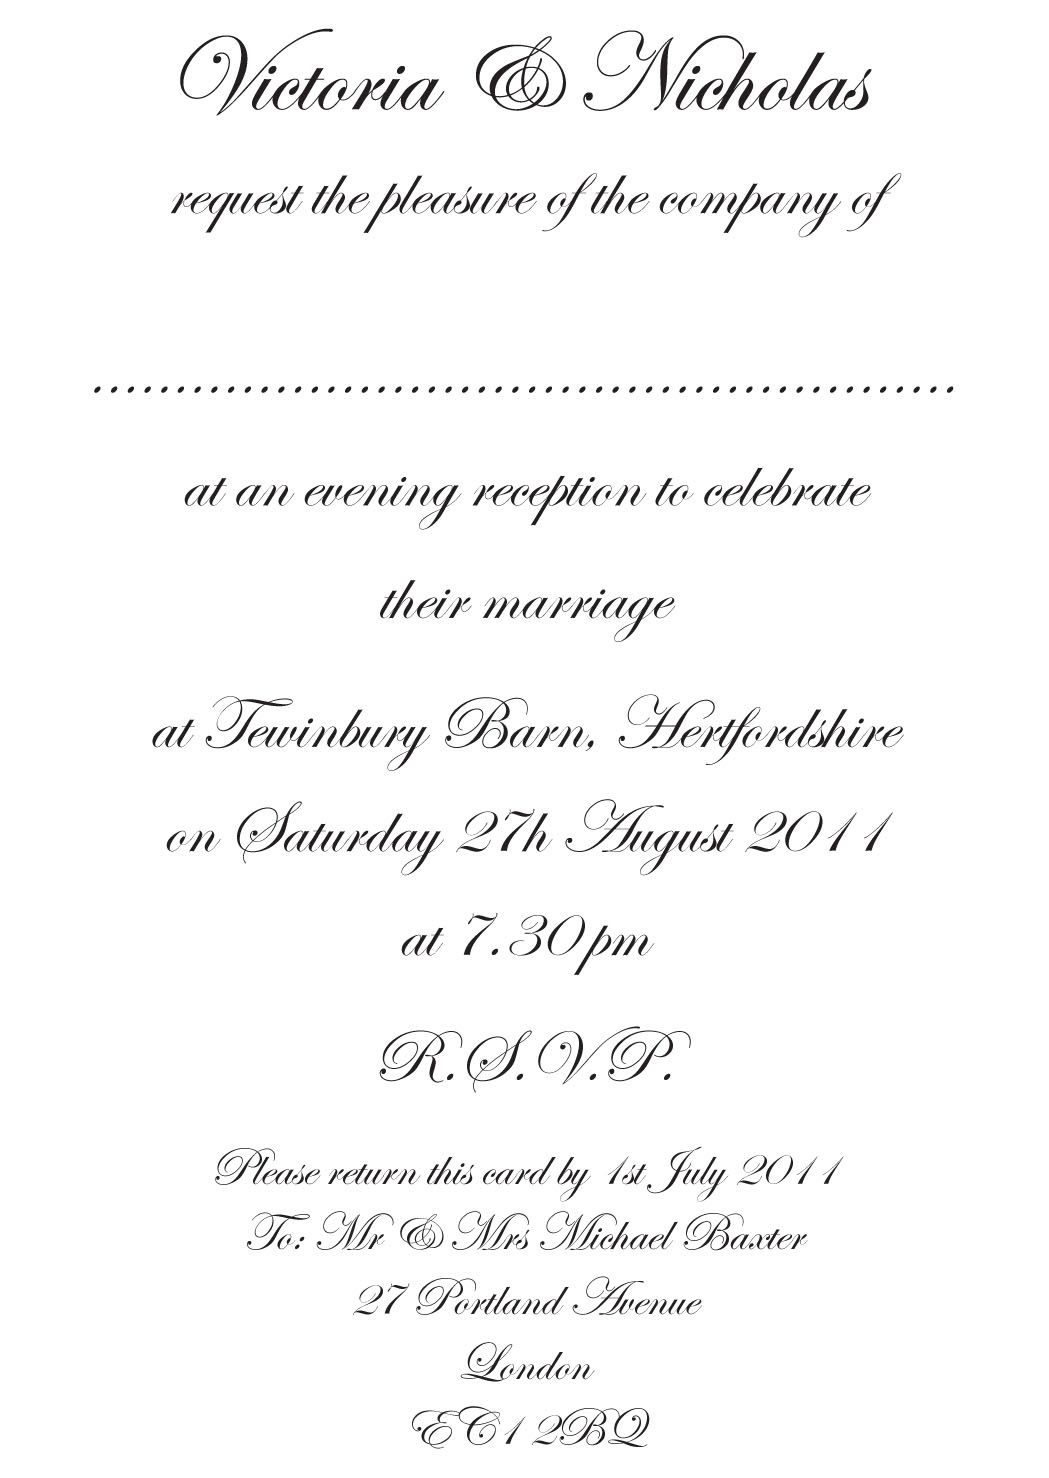 Wedding invitation message2 wedding pinterest invitation wedding invitation message2 stopboris